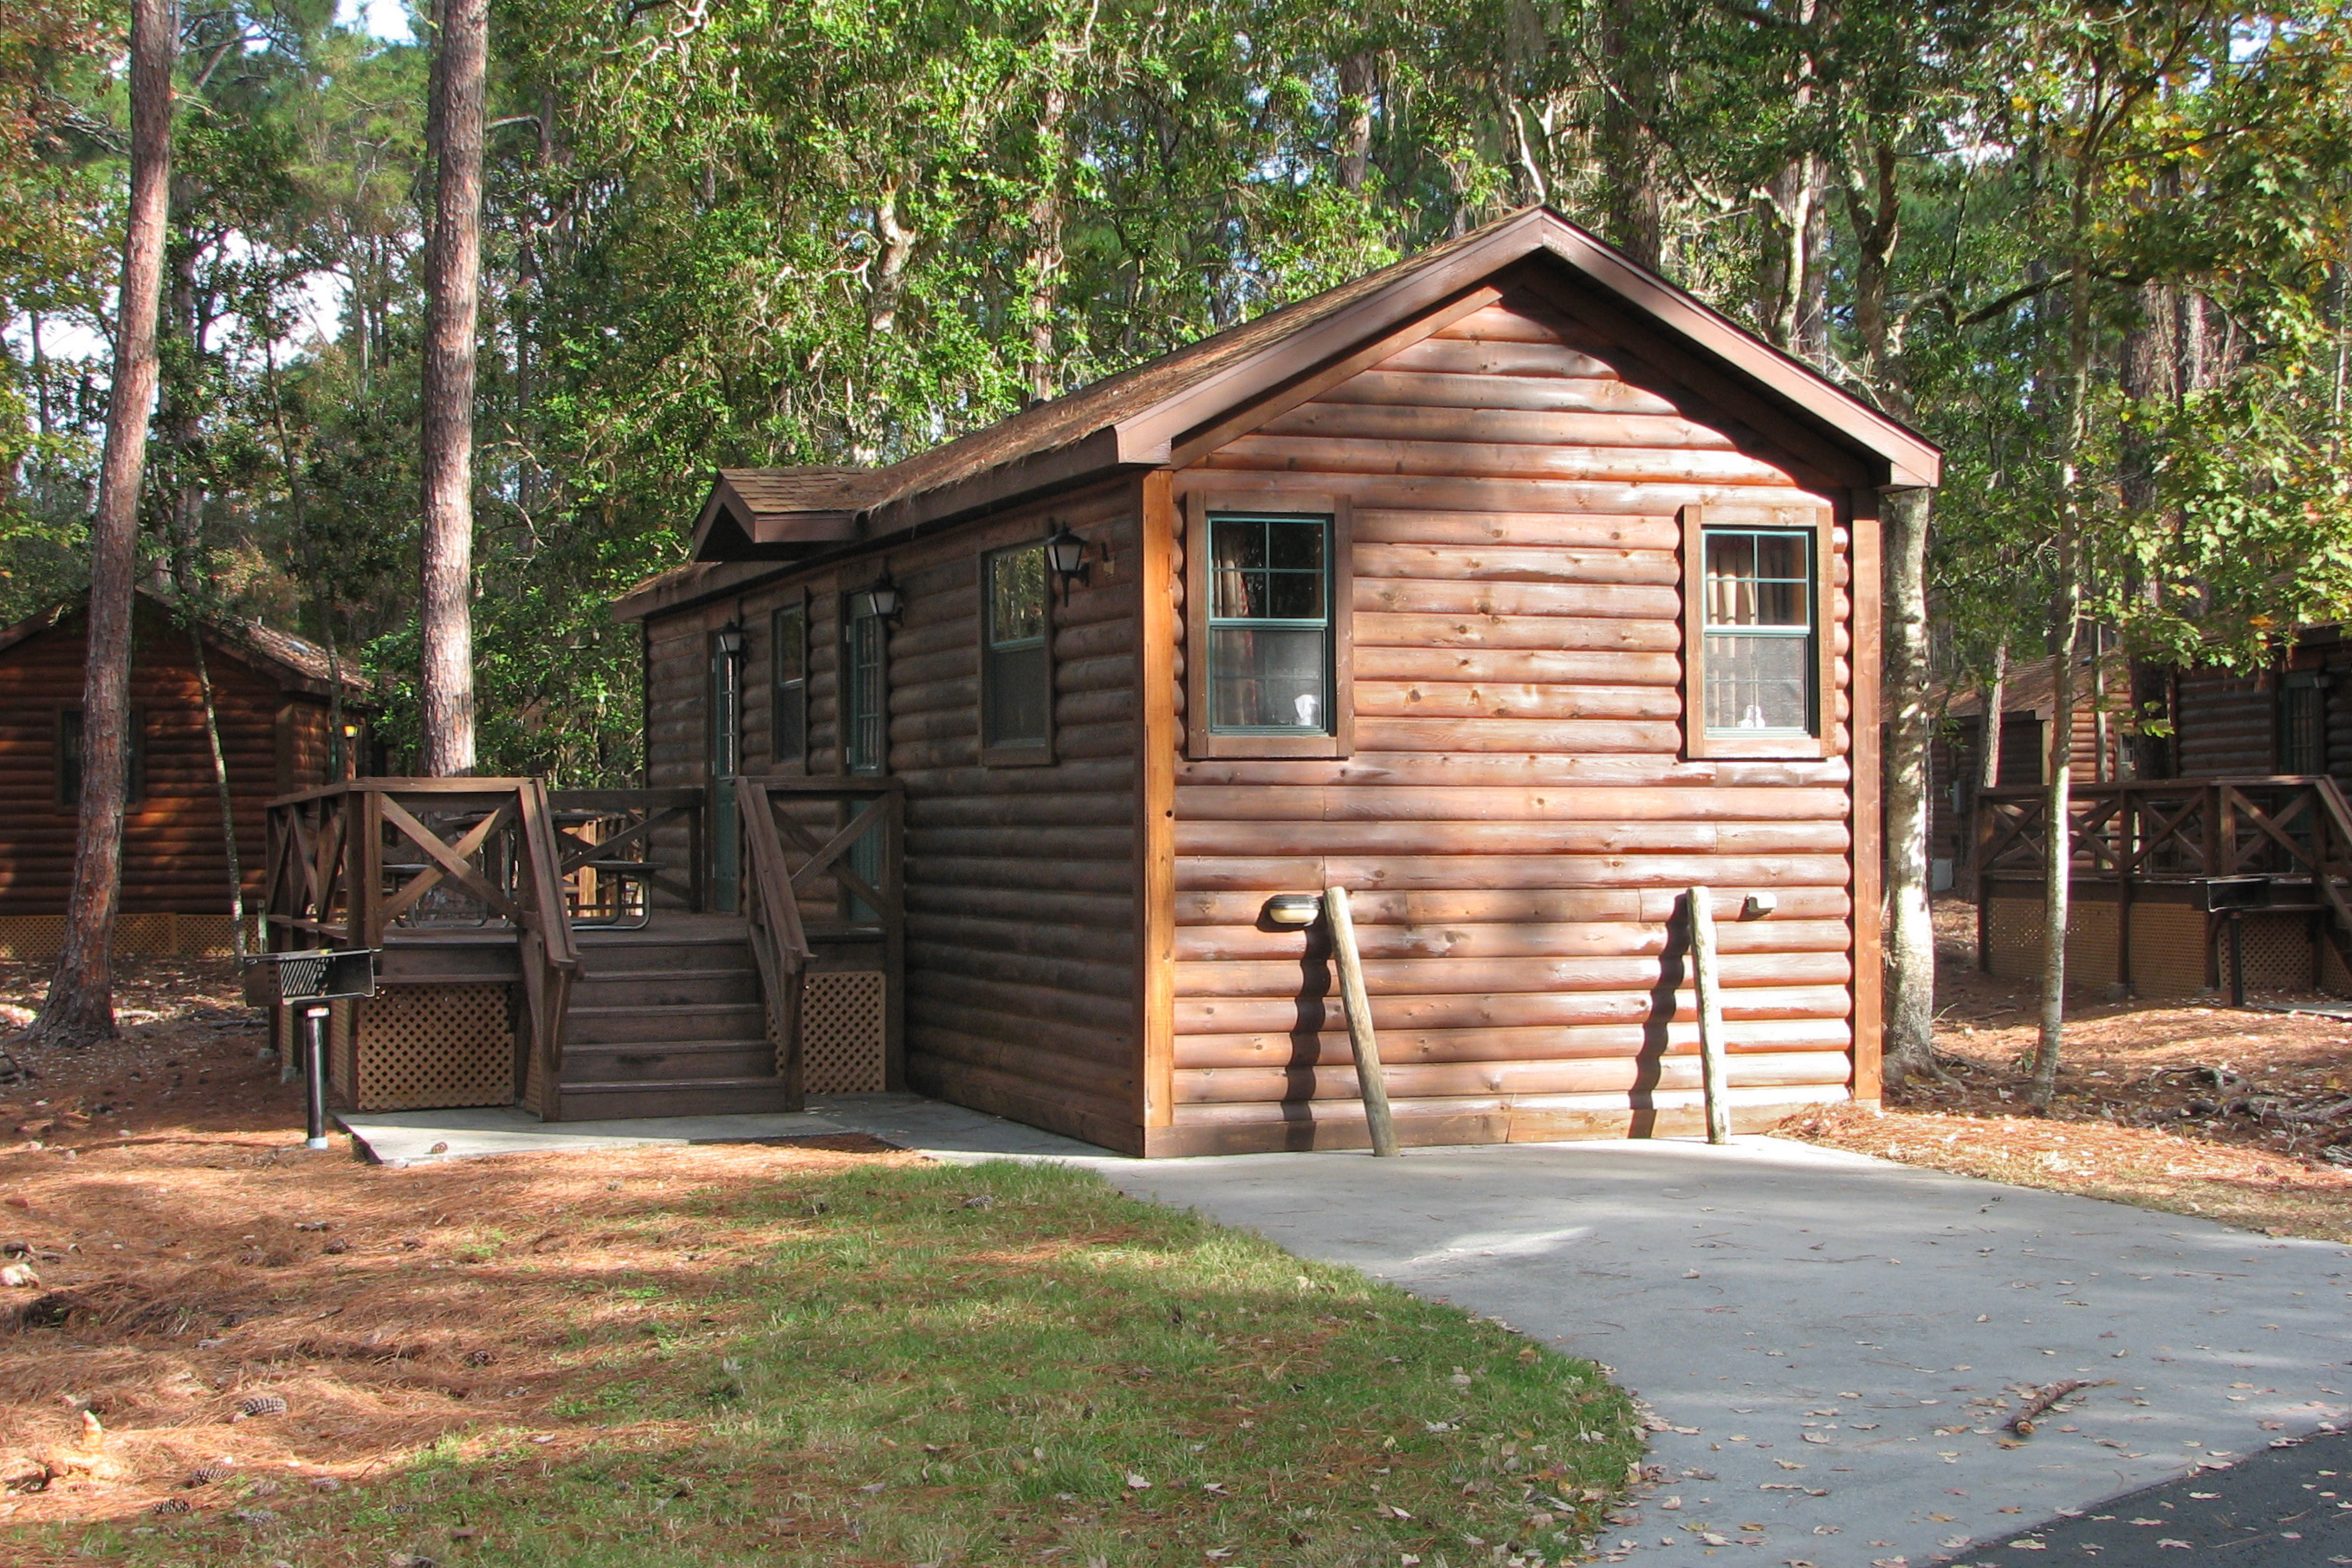 Picture of The Cabins at Disney's Fort Wilderness Resort